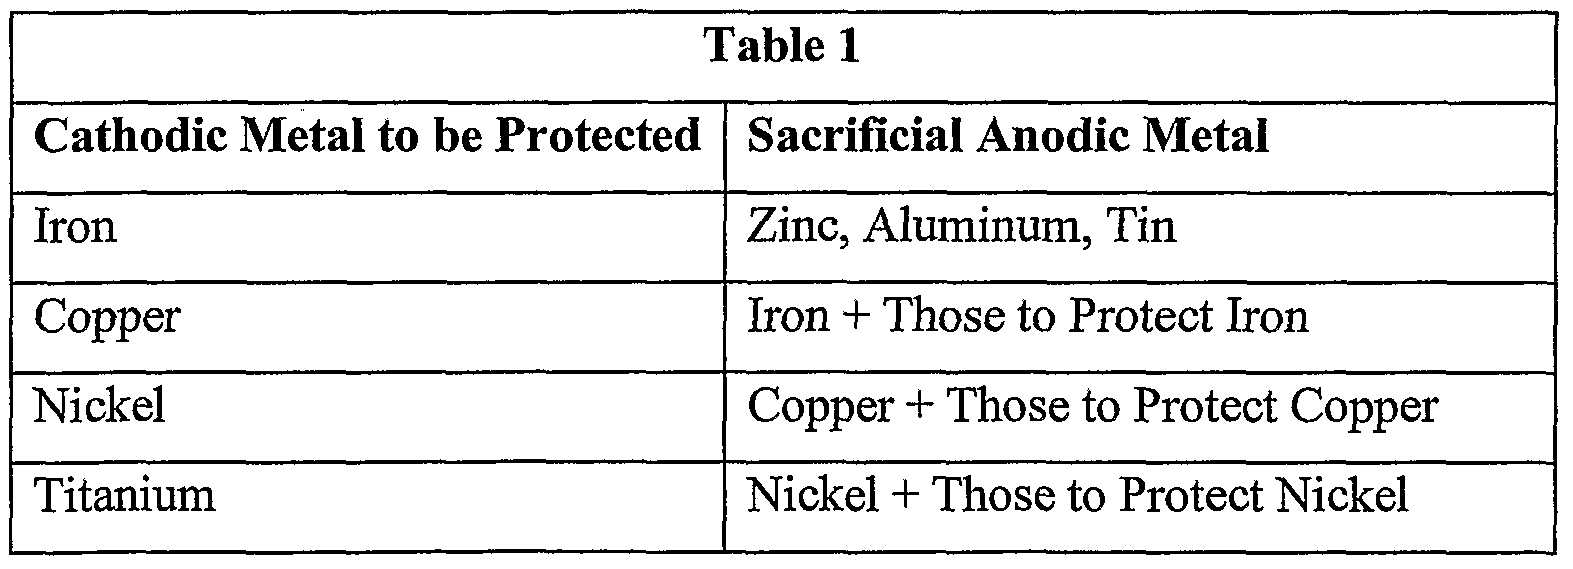 WO2006039179A2 - Use of cathodic protection compounds on